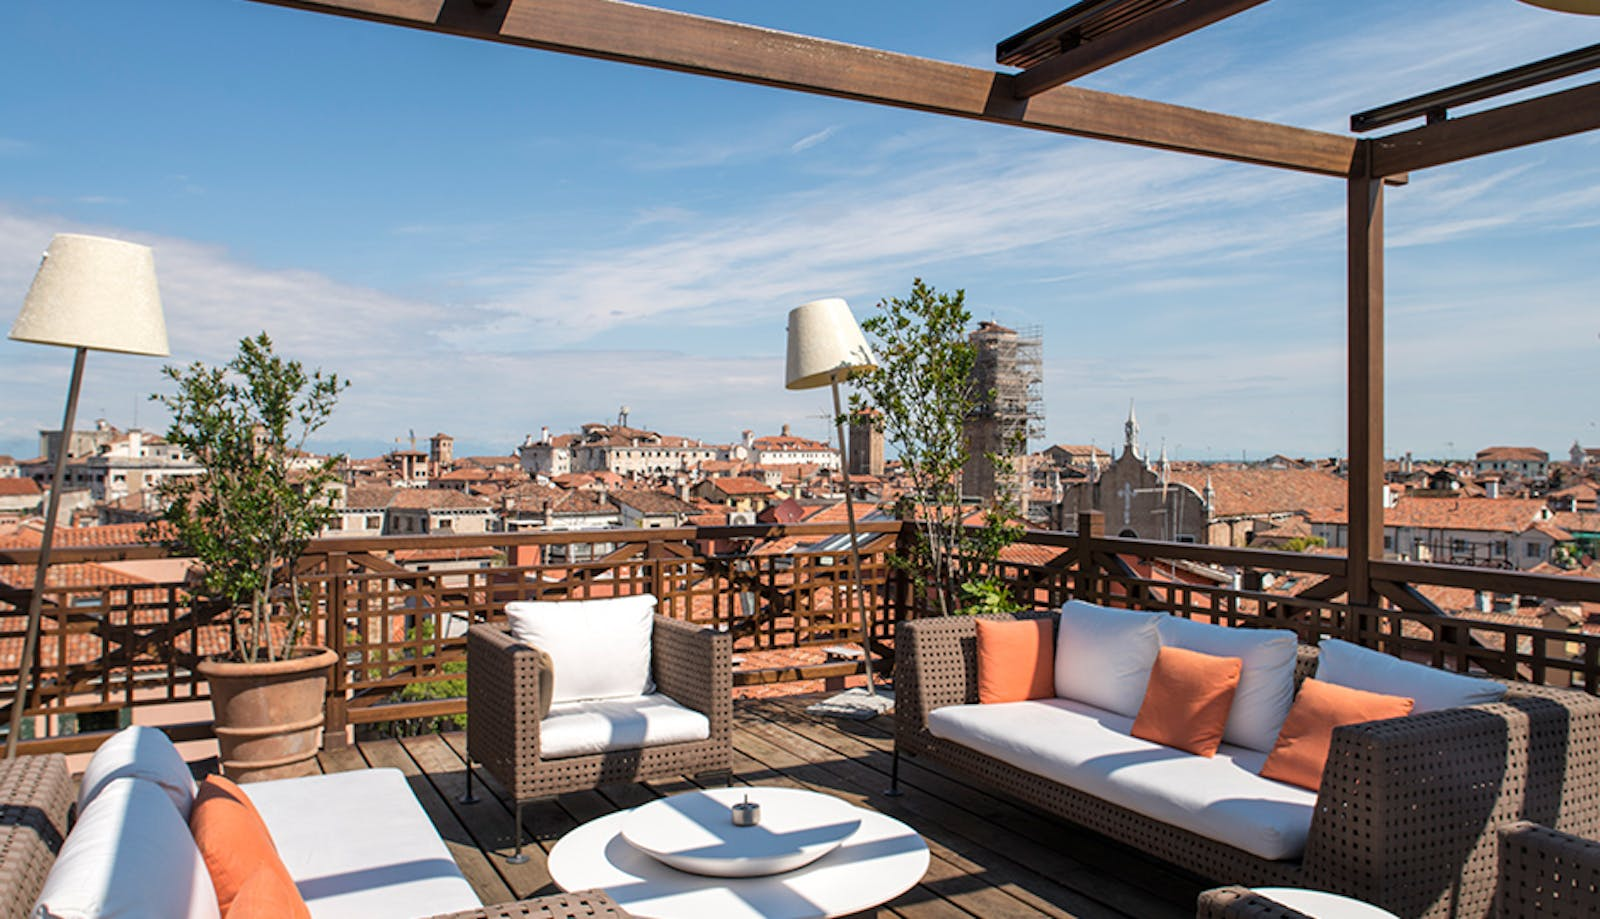 Roof Terrace at Aman, Venice, Italy